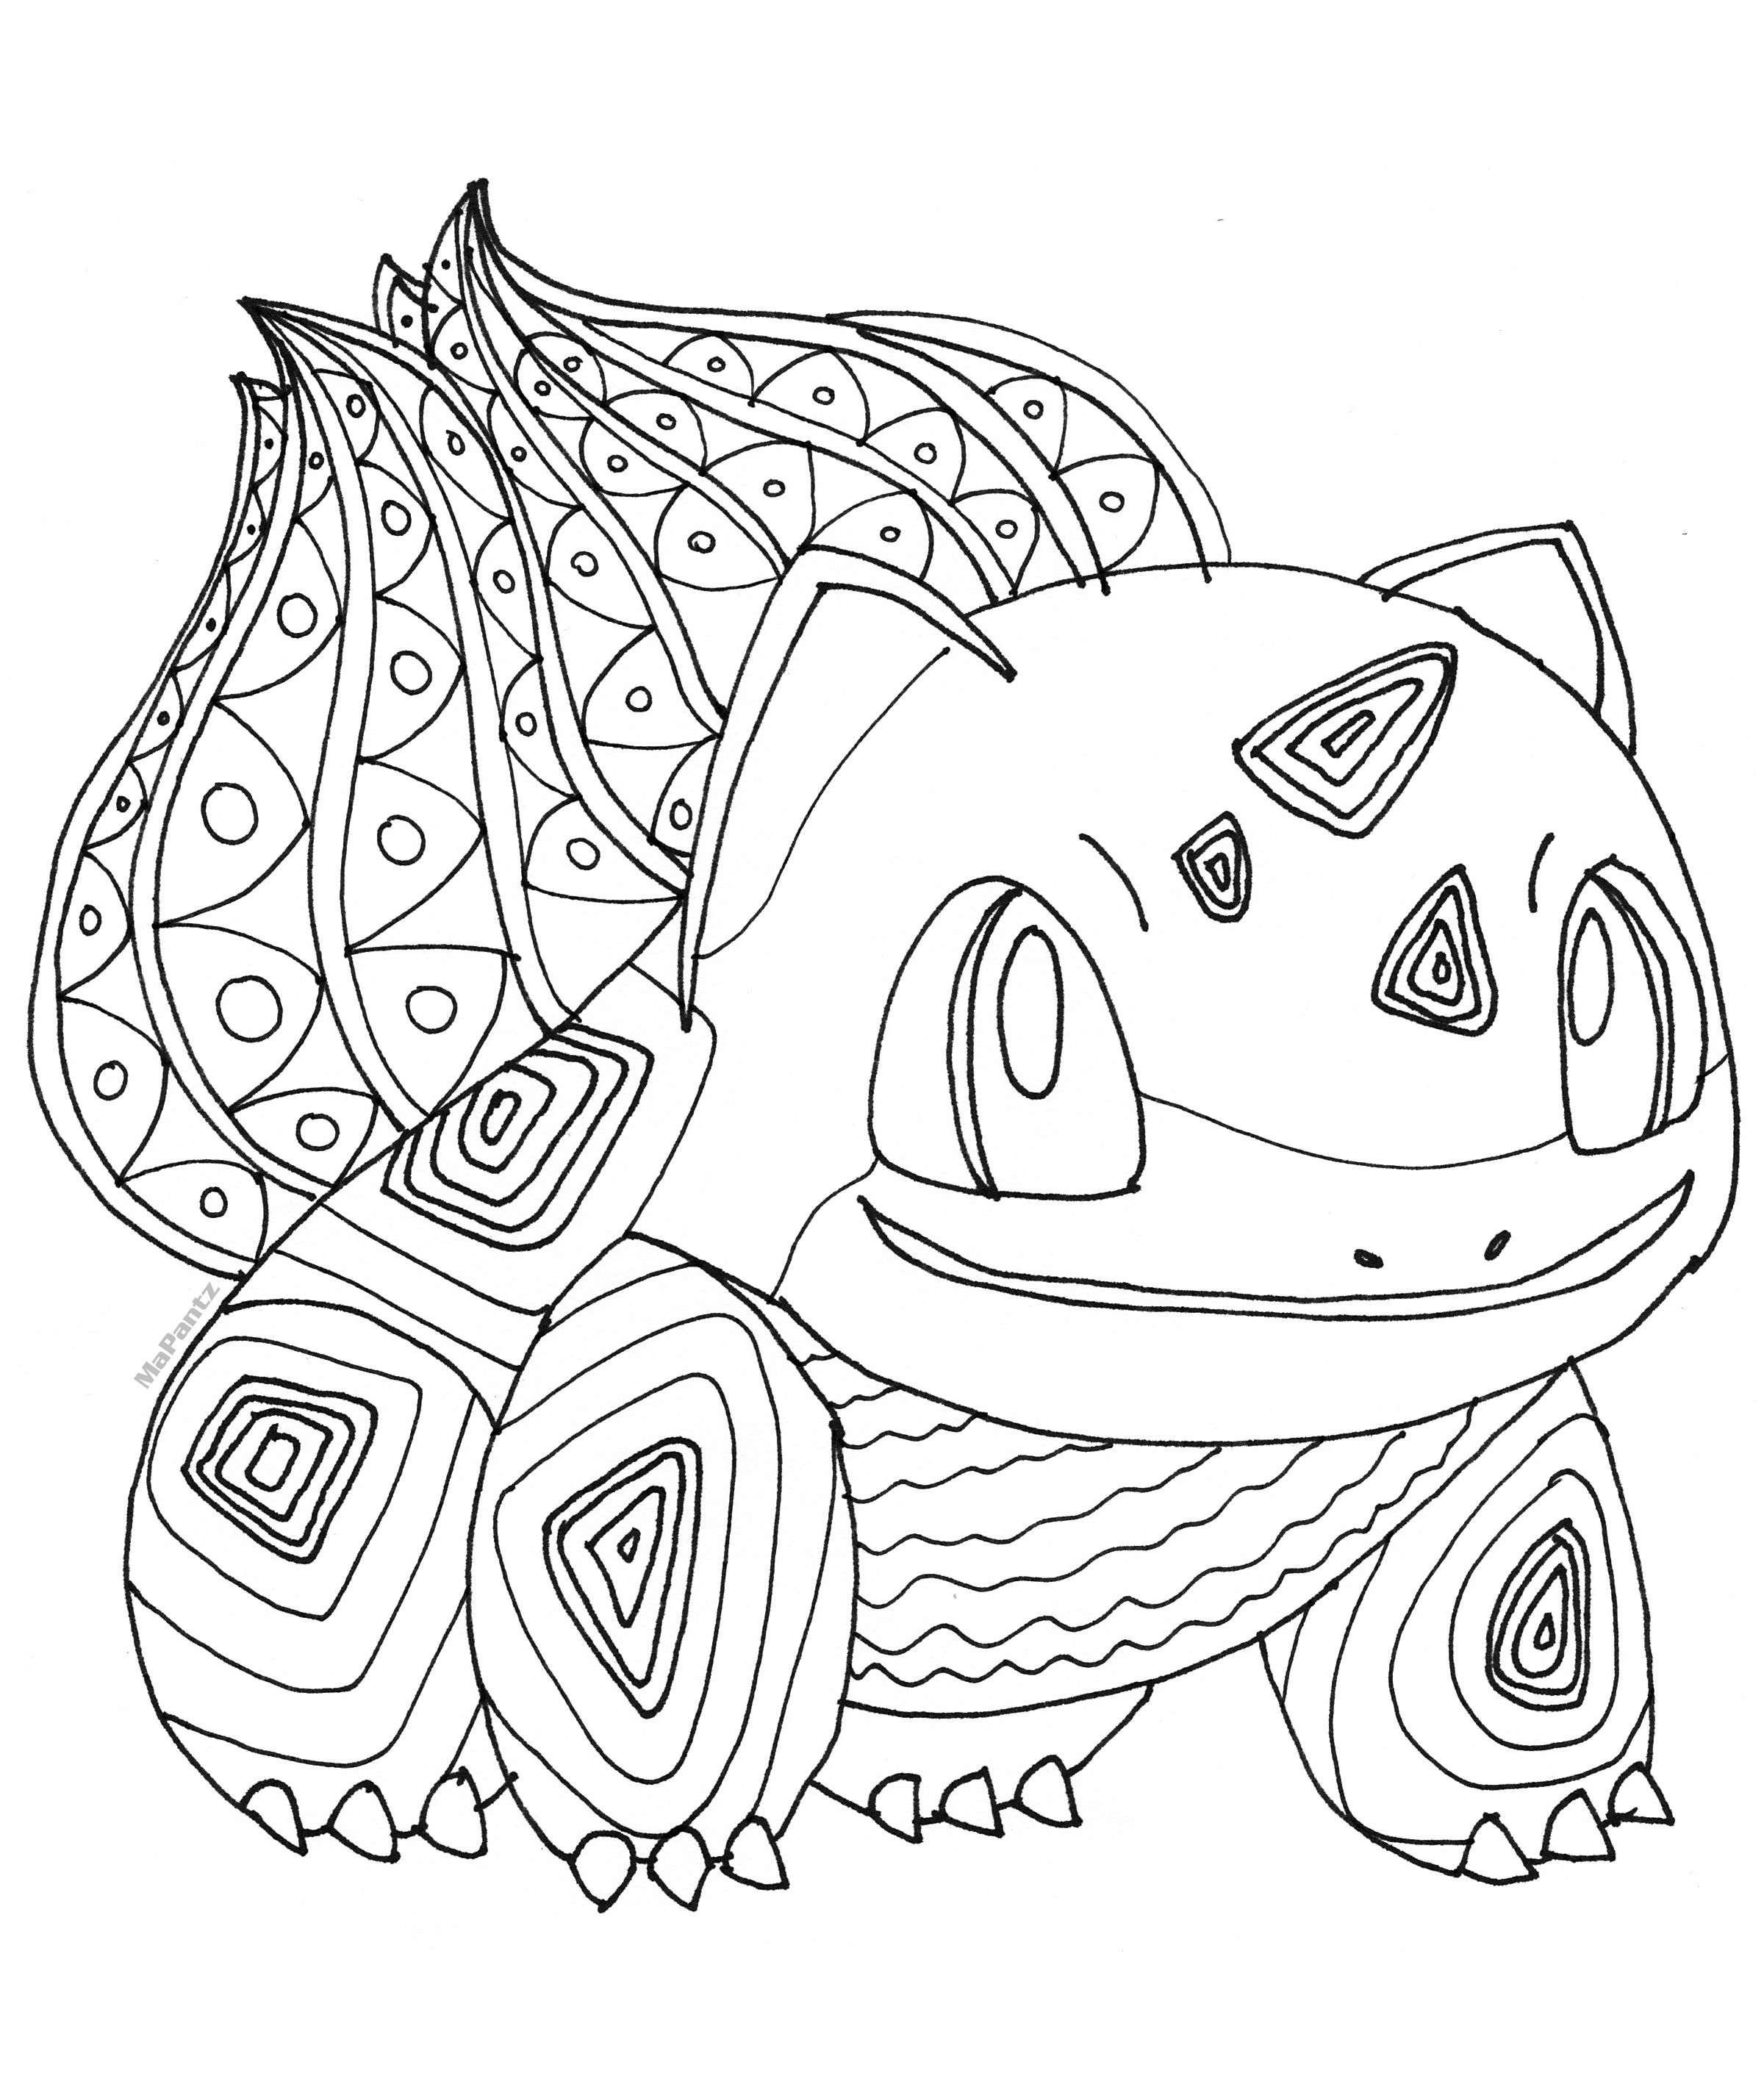 Pokemon Bulbasaur Free Coloring Page By Mapantz Pokemon Coloring Pokemon Coloring Sheets Free Coloring Pages